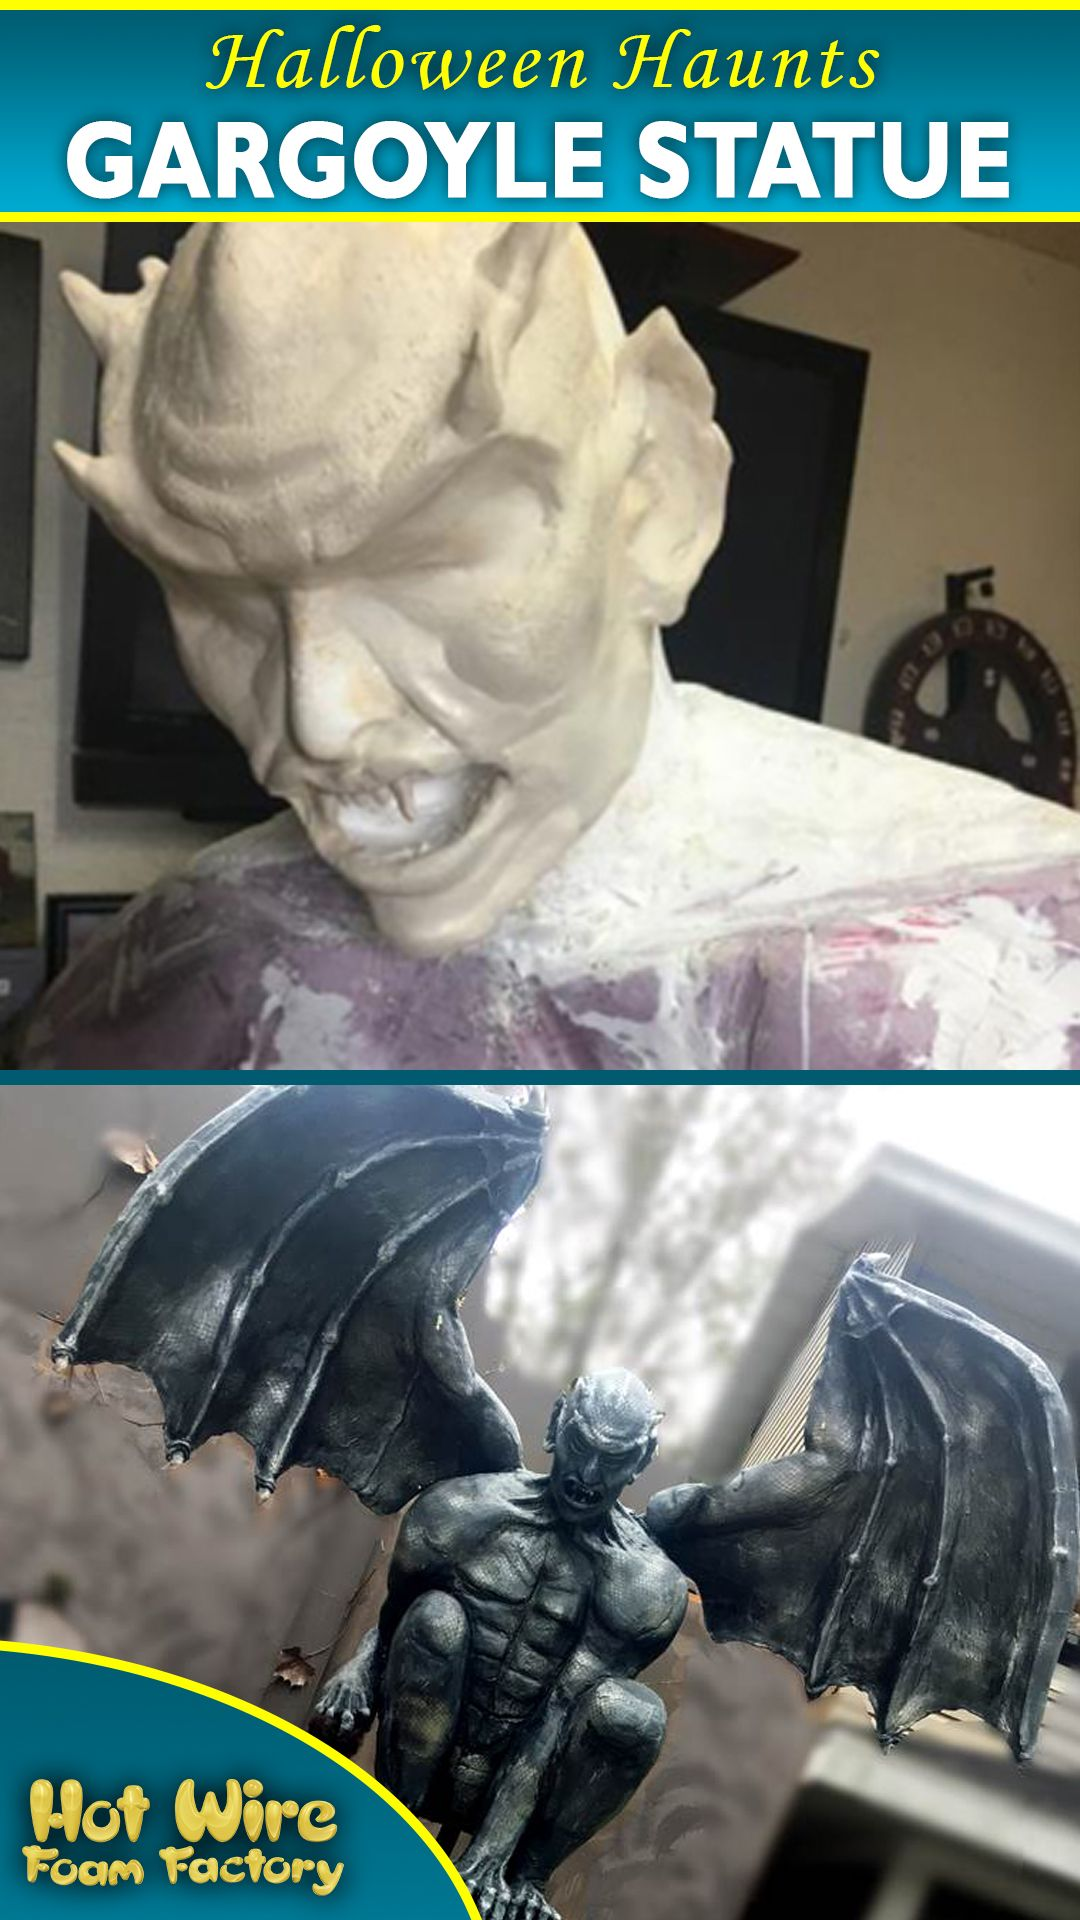 Hots Halloween Mount 2020 Foam Gargoyle Statue | Hot Wire Foam Factory in 2020 | Gargoyles